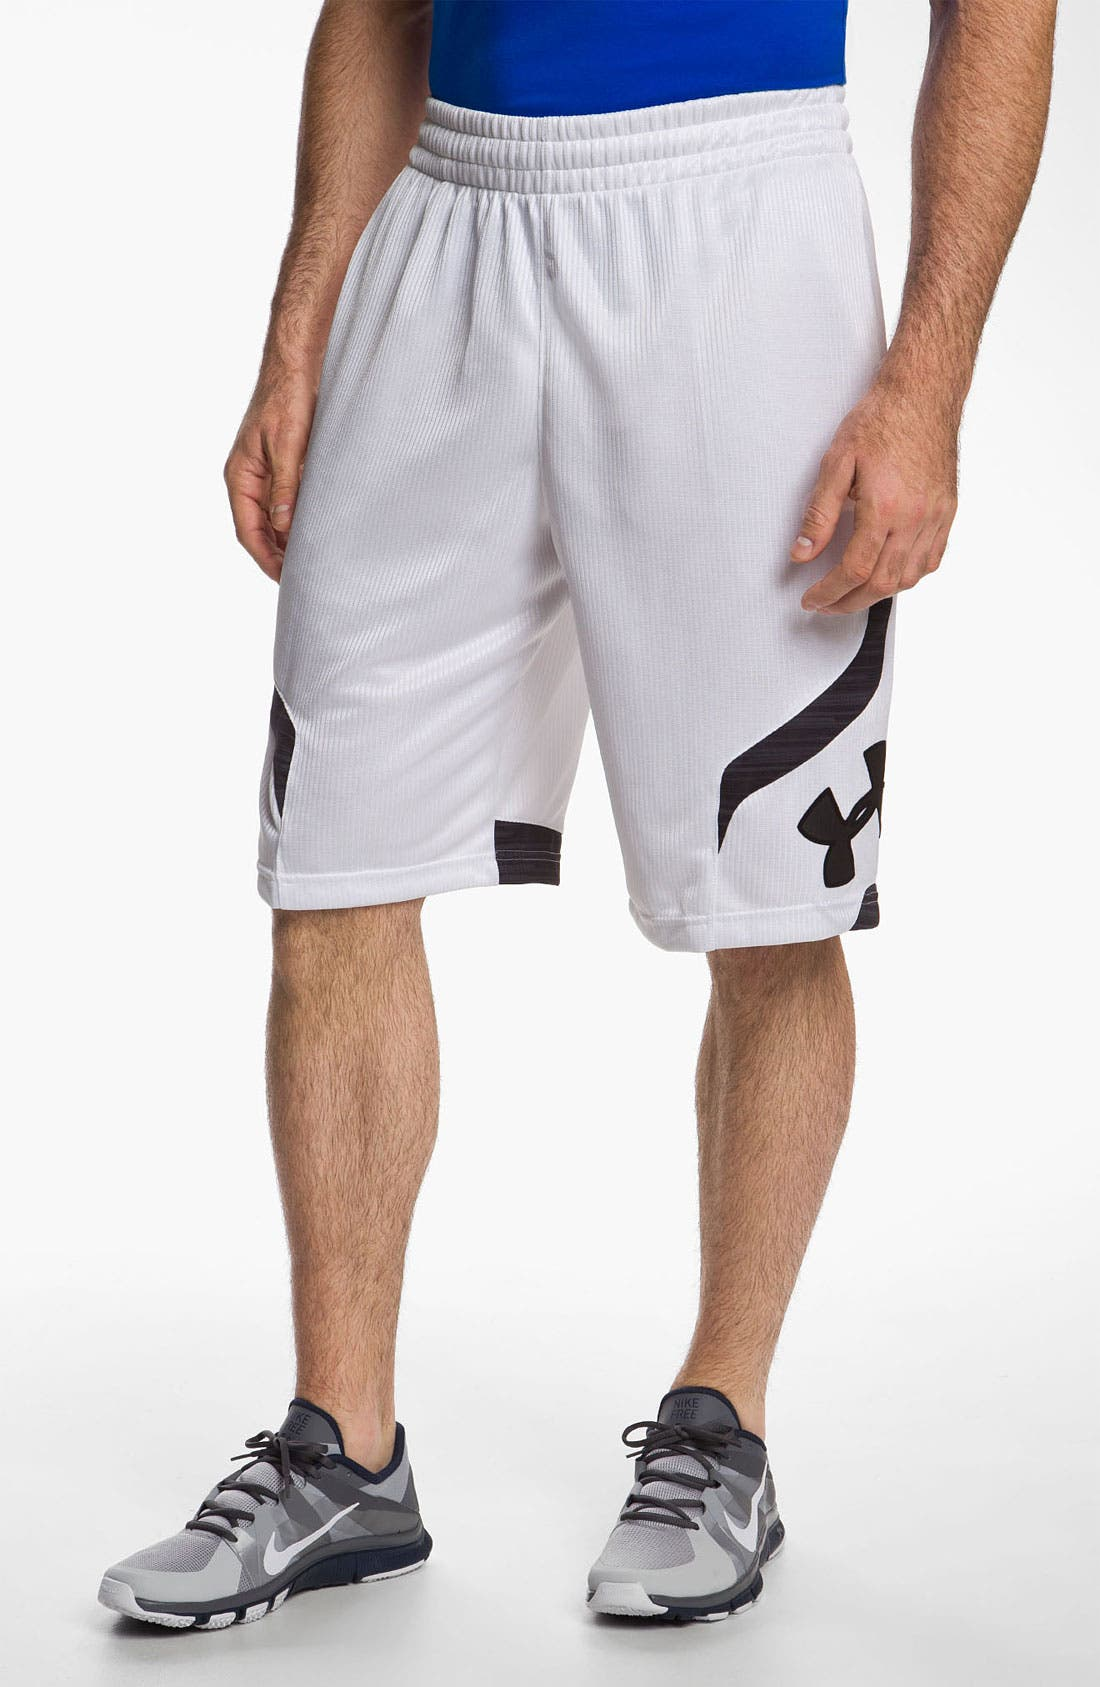 Alternate Image 1 Selected - Under Armour 'Valkyrie' Shorts (Online Only)